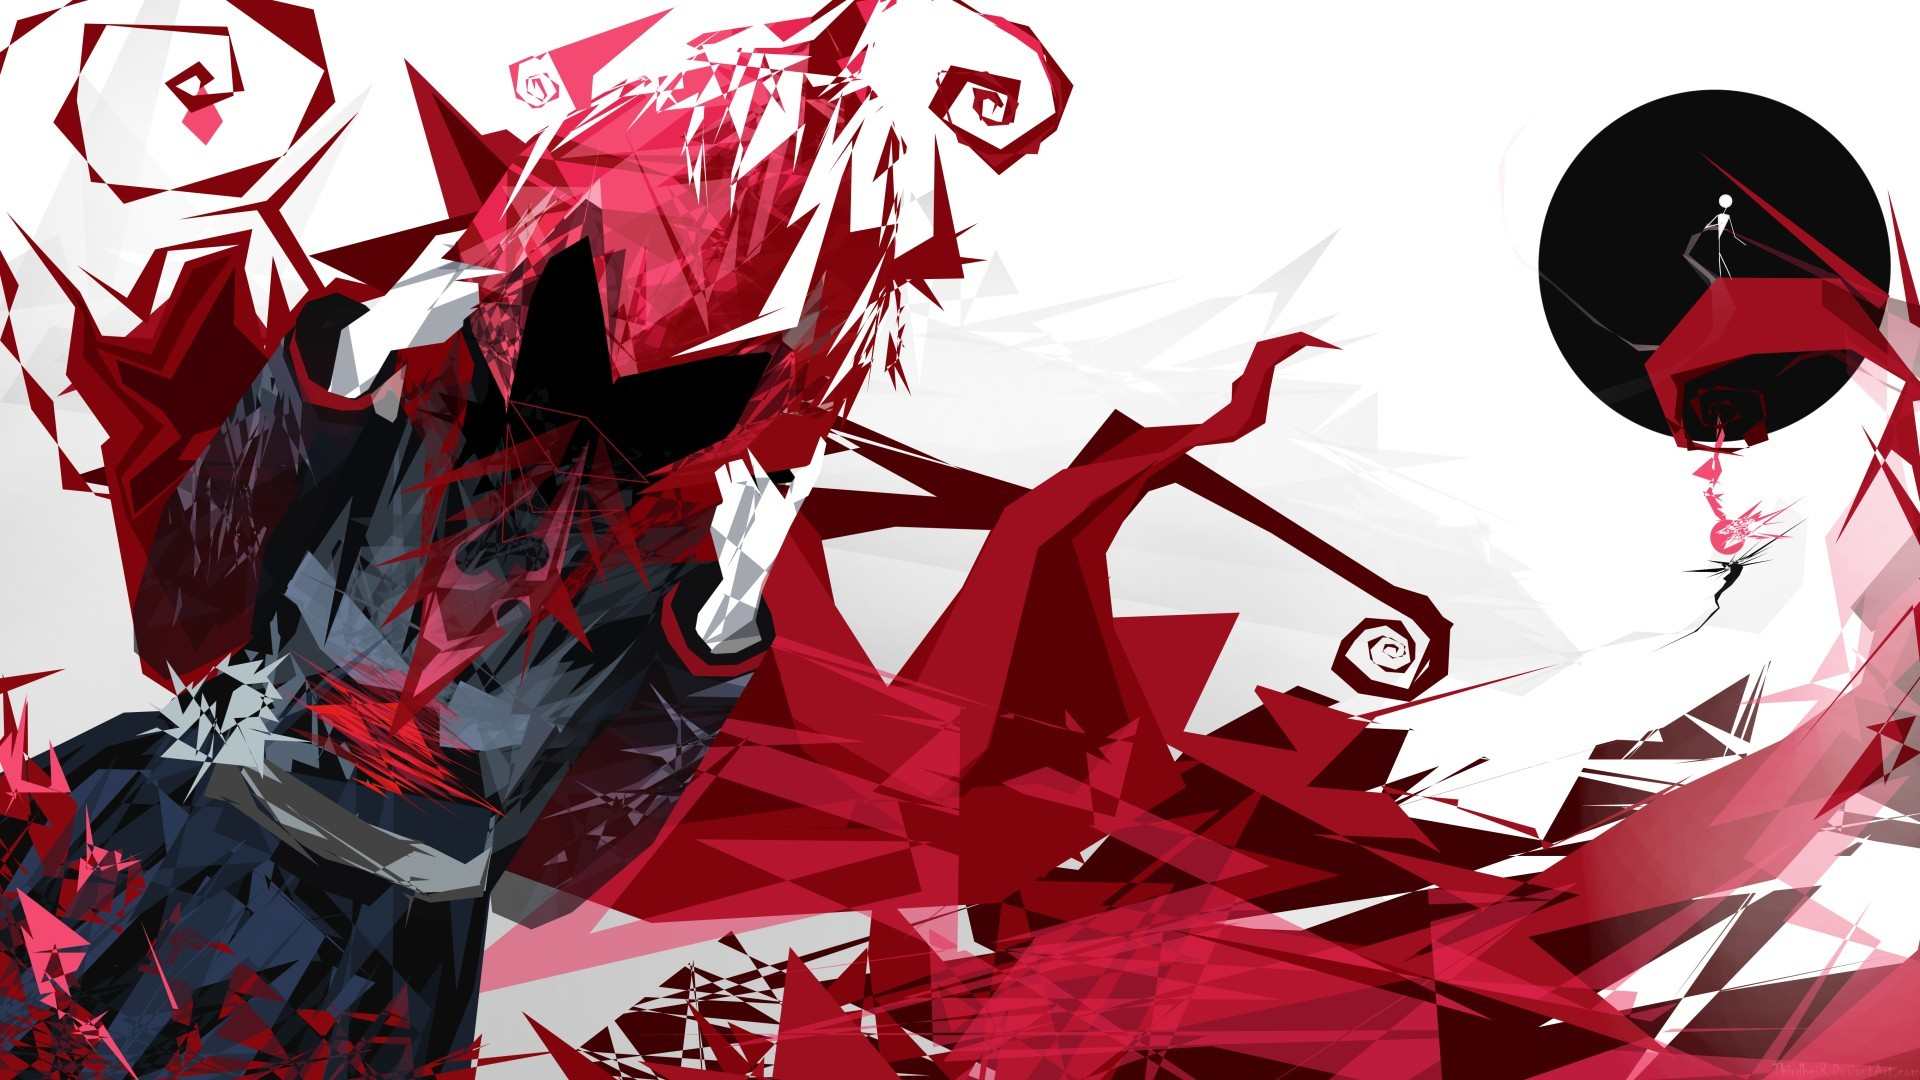 Res: 1920x1080, rwby rose ruby abstract deviantart rwby wallpaper and background. rwby nora rooster  teeth